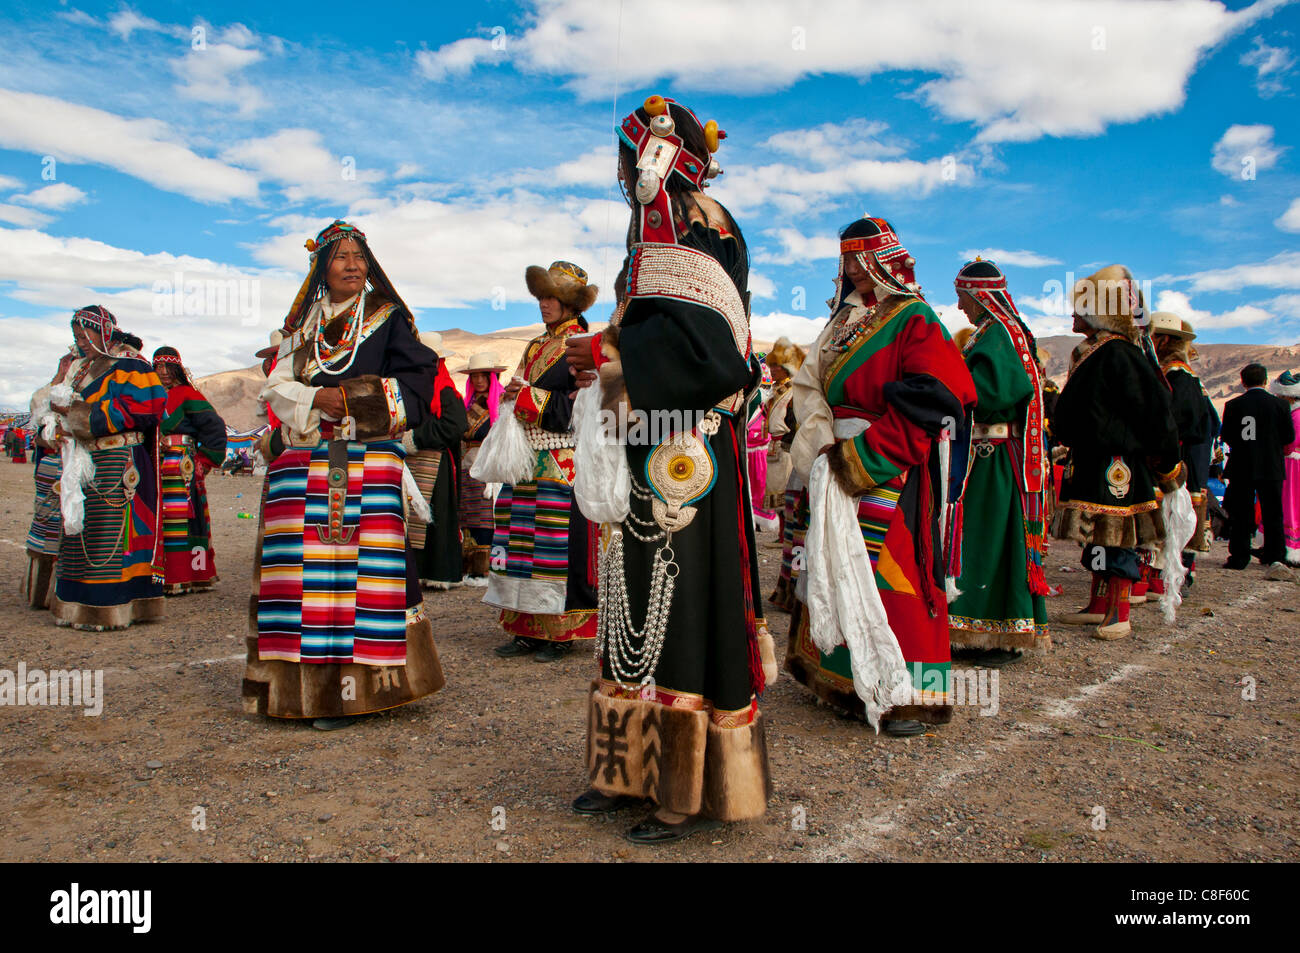 Traditionally dressed Tibetans participating at a local festival, Gerze, Tibet, China - Stock Image